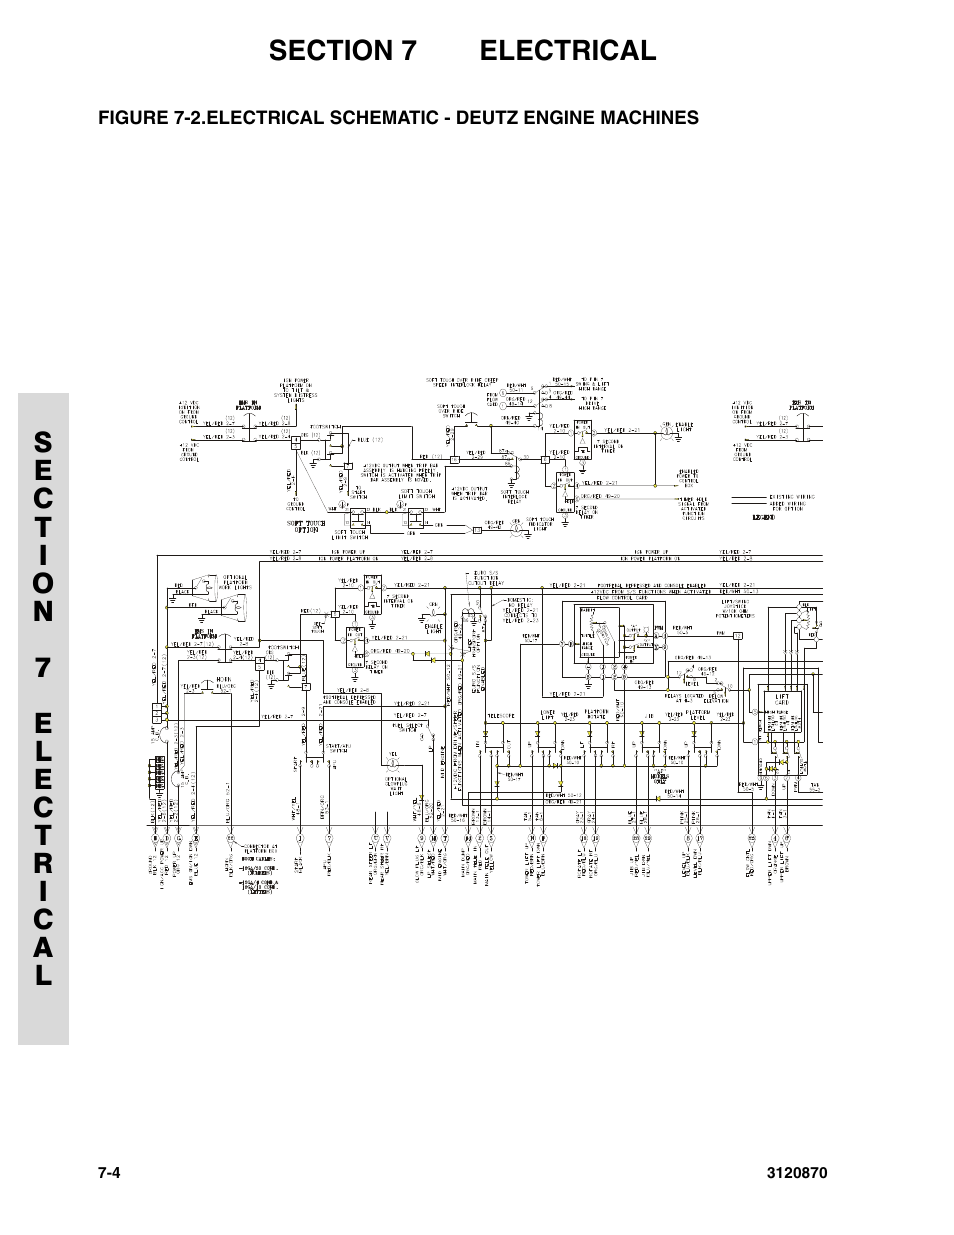 Electrical Schematic Deutz Engine Machines 4 Jlg 450aj Parts Diagram Manual User Page 190 212